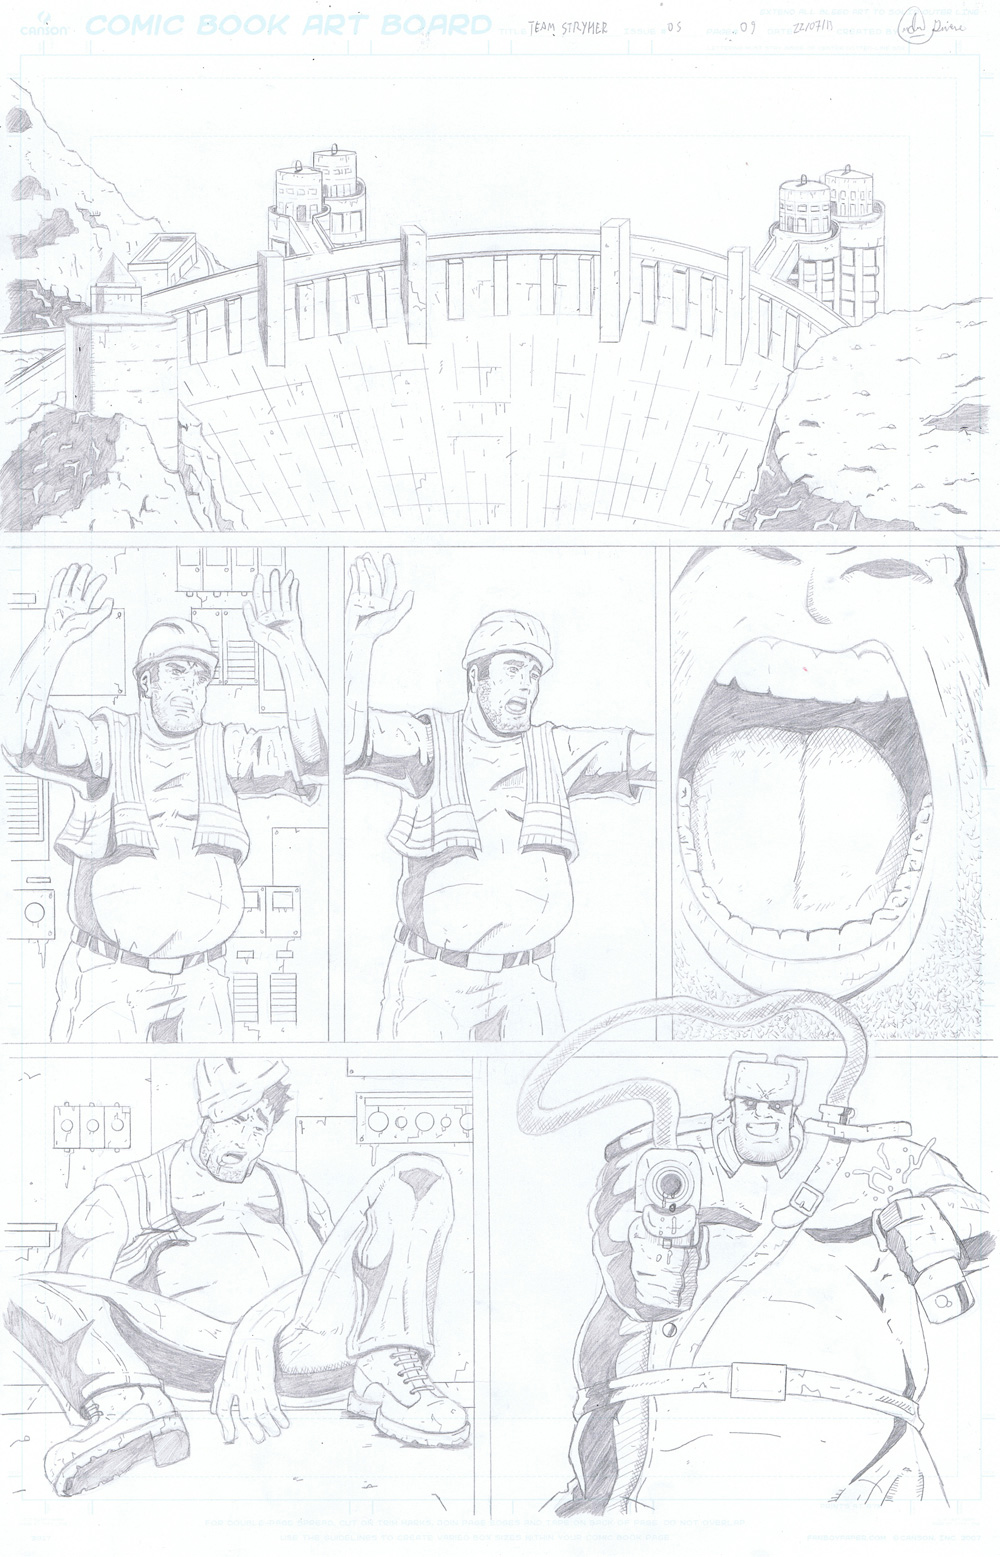 MISSION 005: PAGE 09 PENCIL